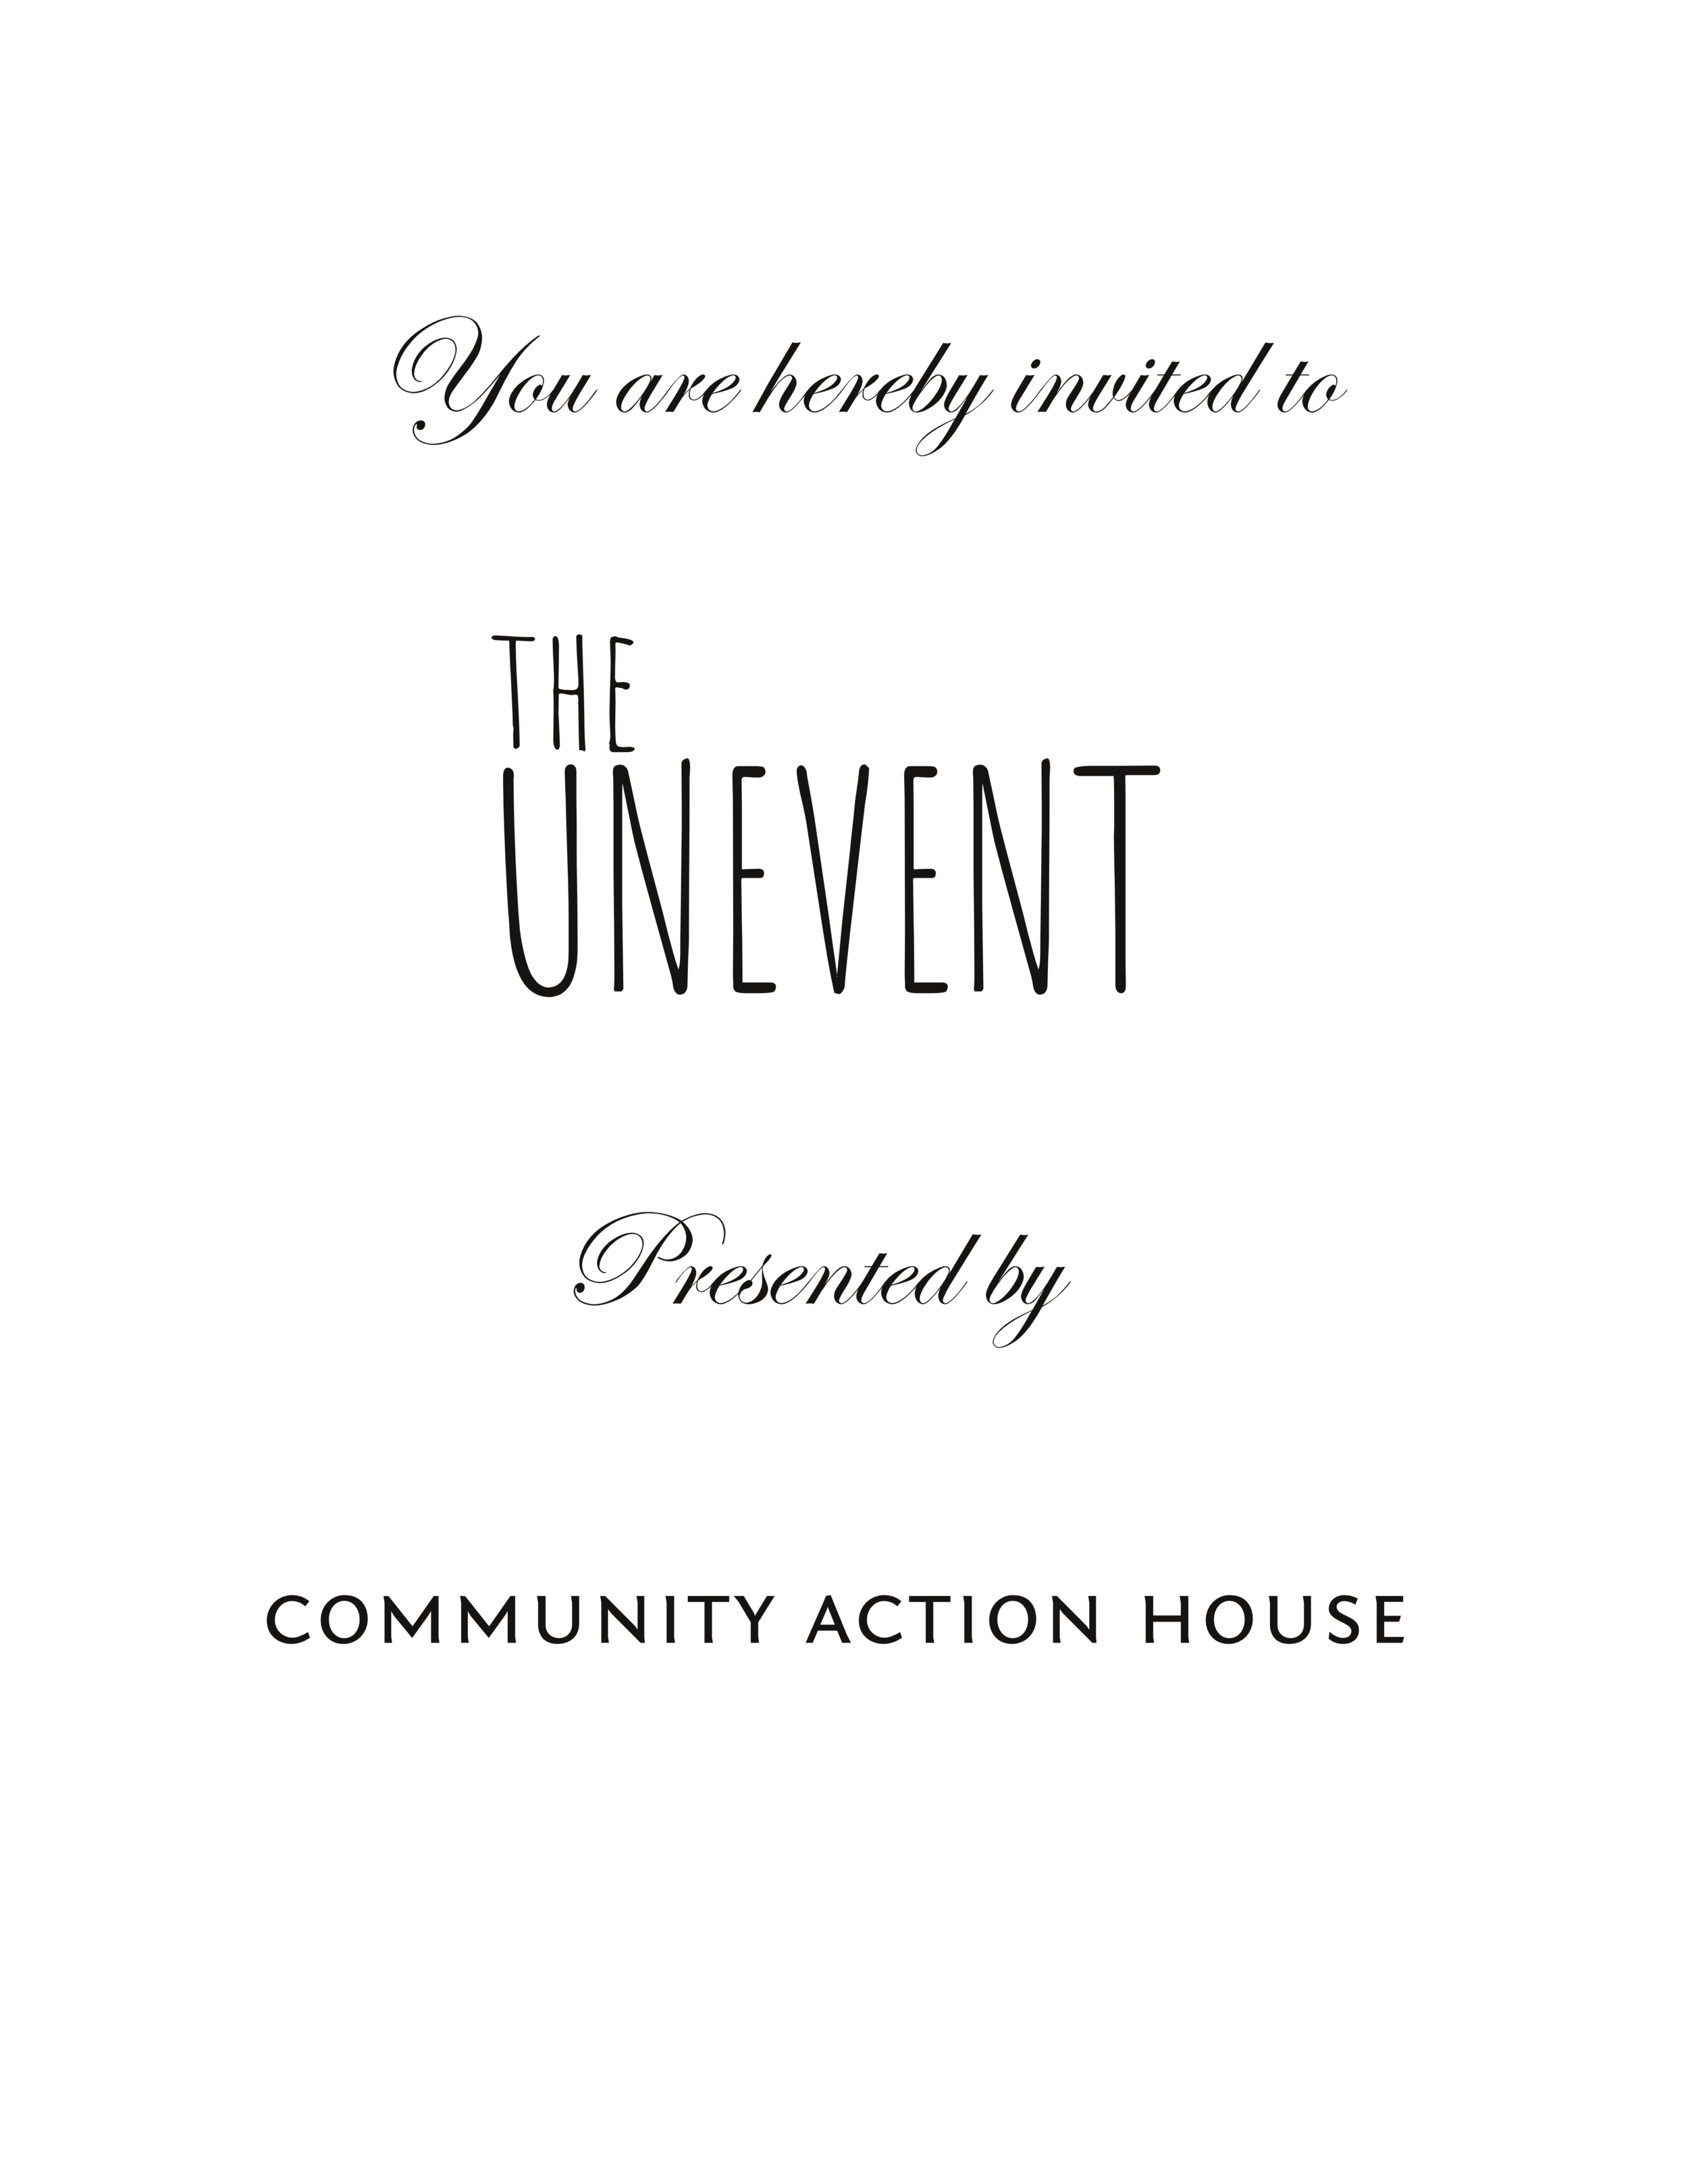 logo-and-invitation-page002.png